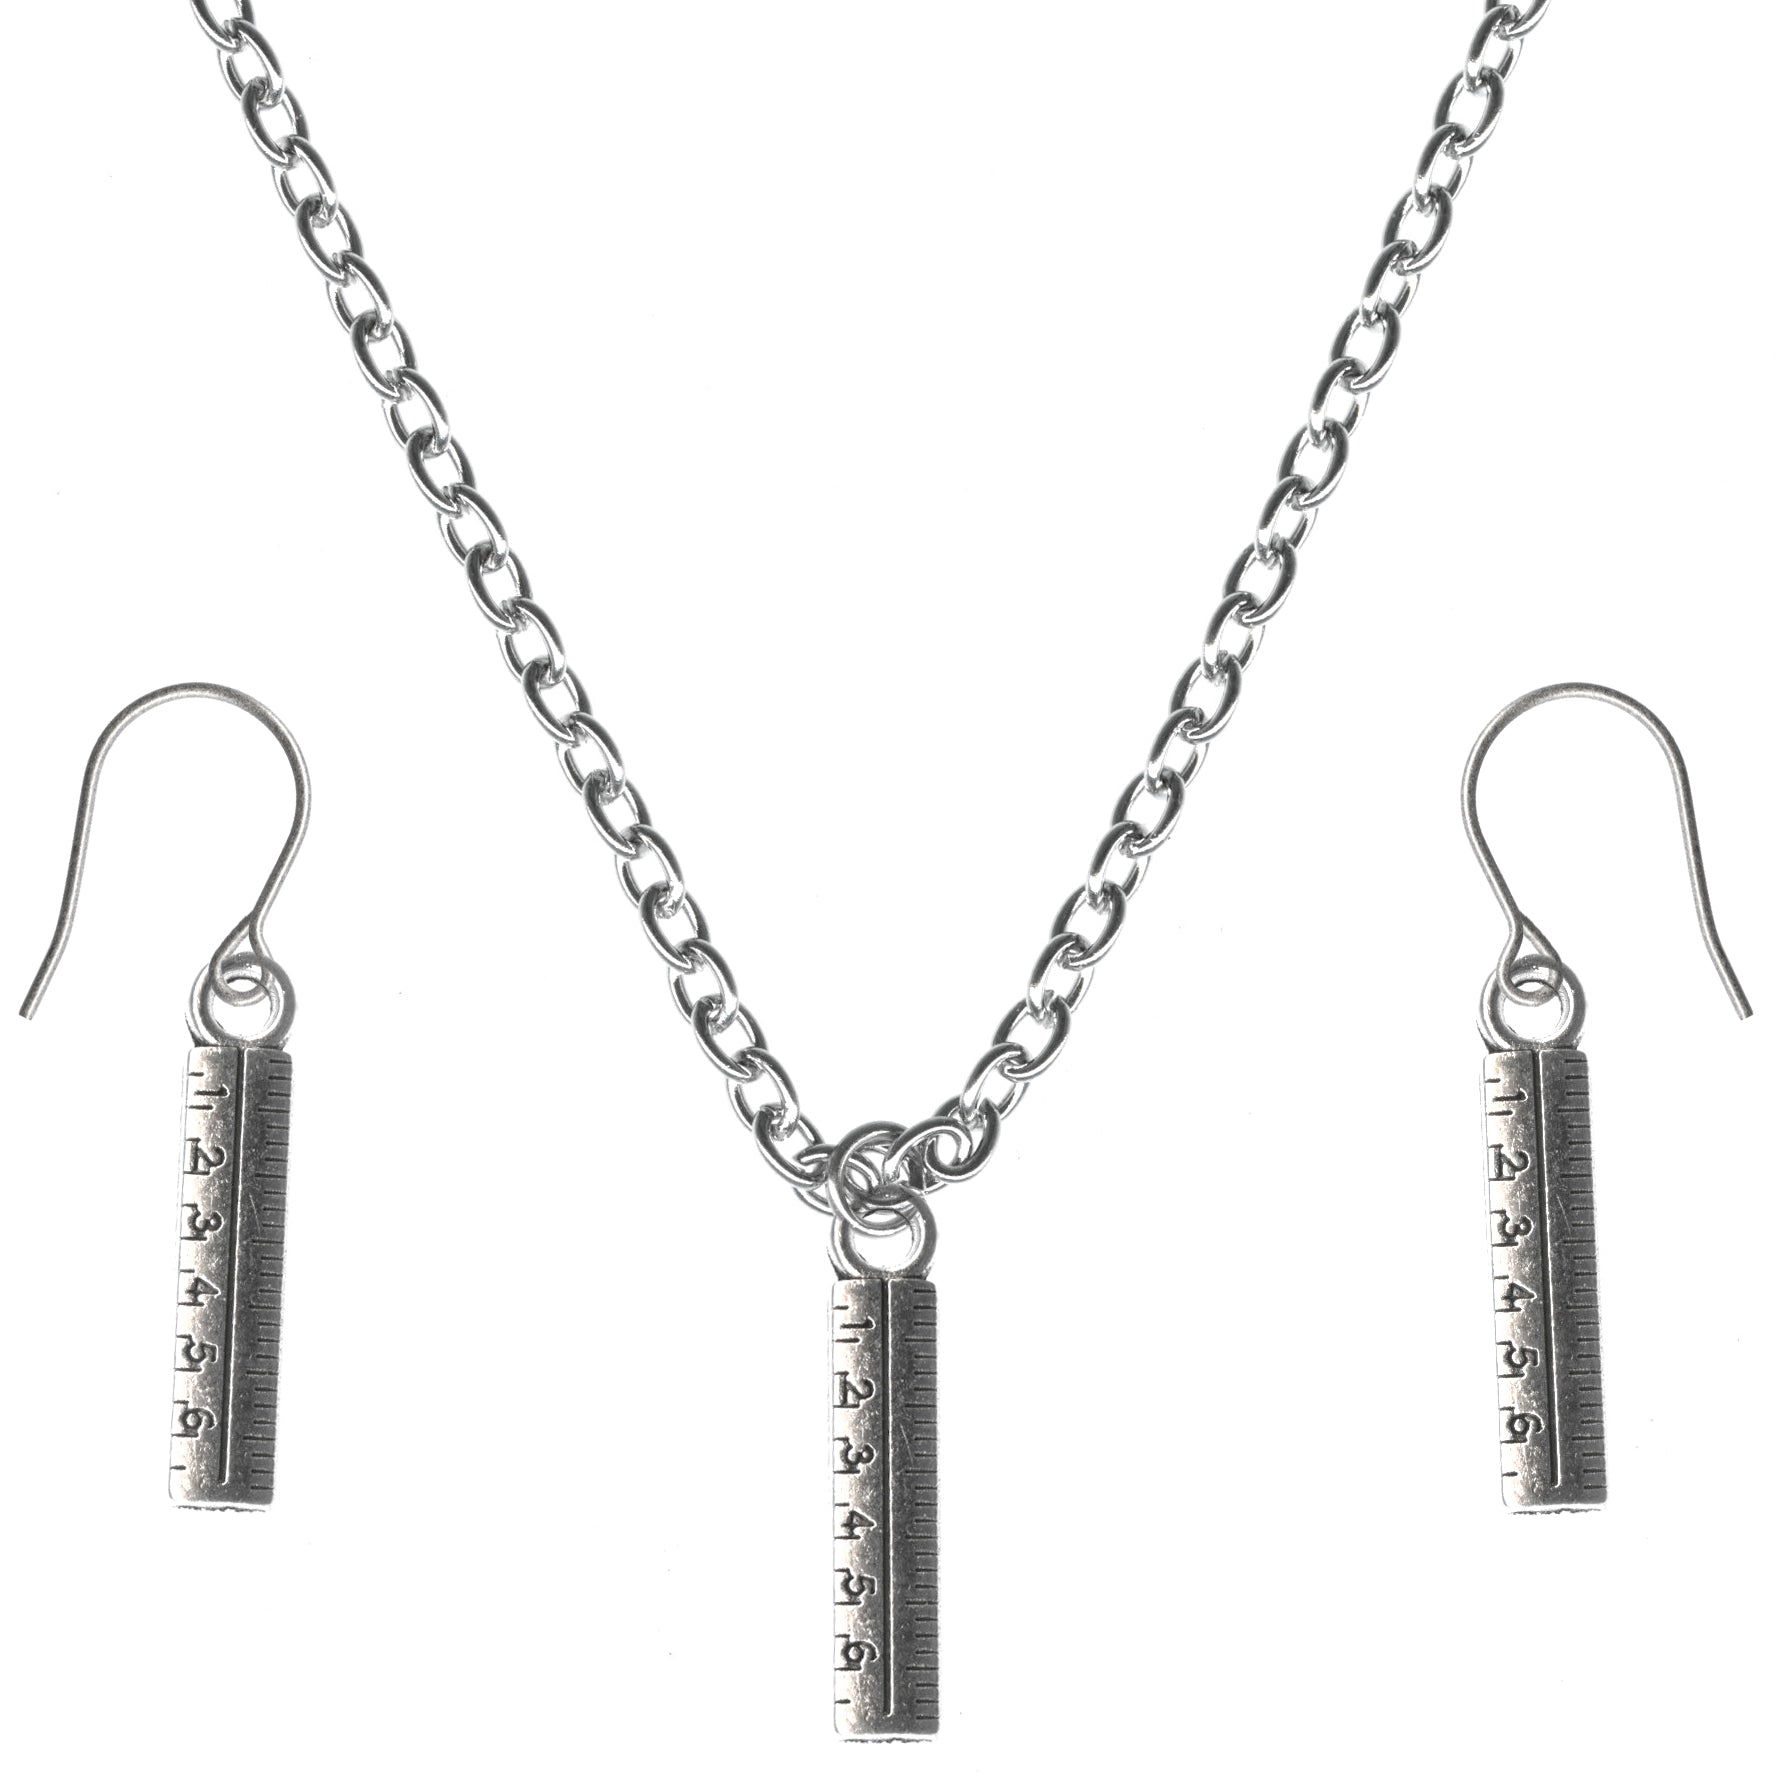 Ruler Charms Steel Chain Necklace and Hypoallergenic Titanium Earrings Set